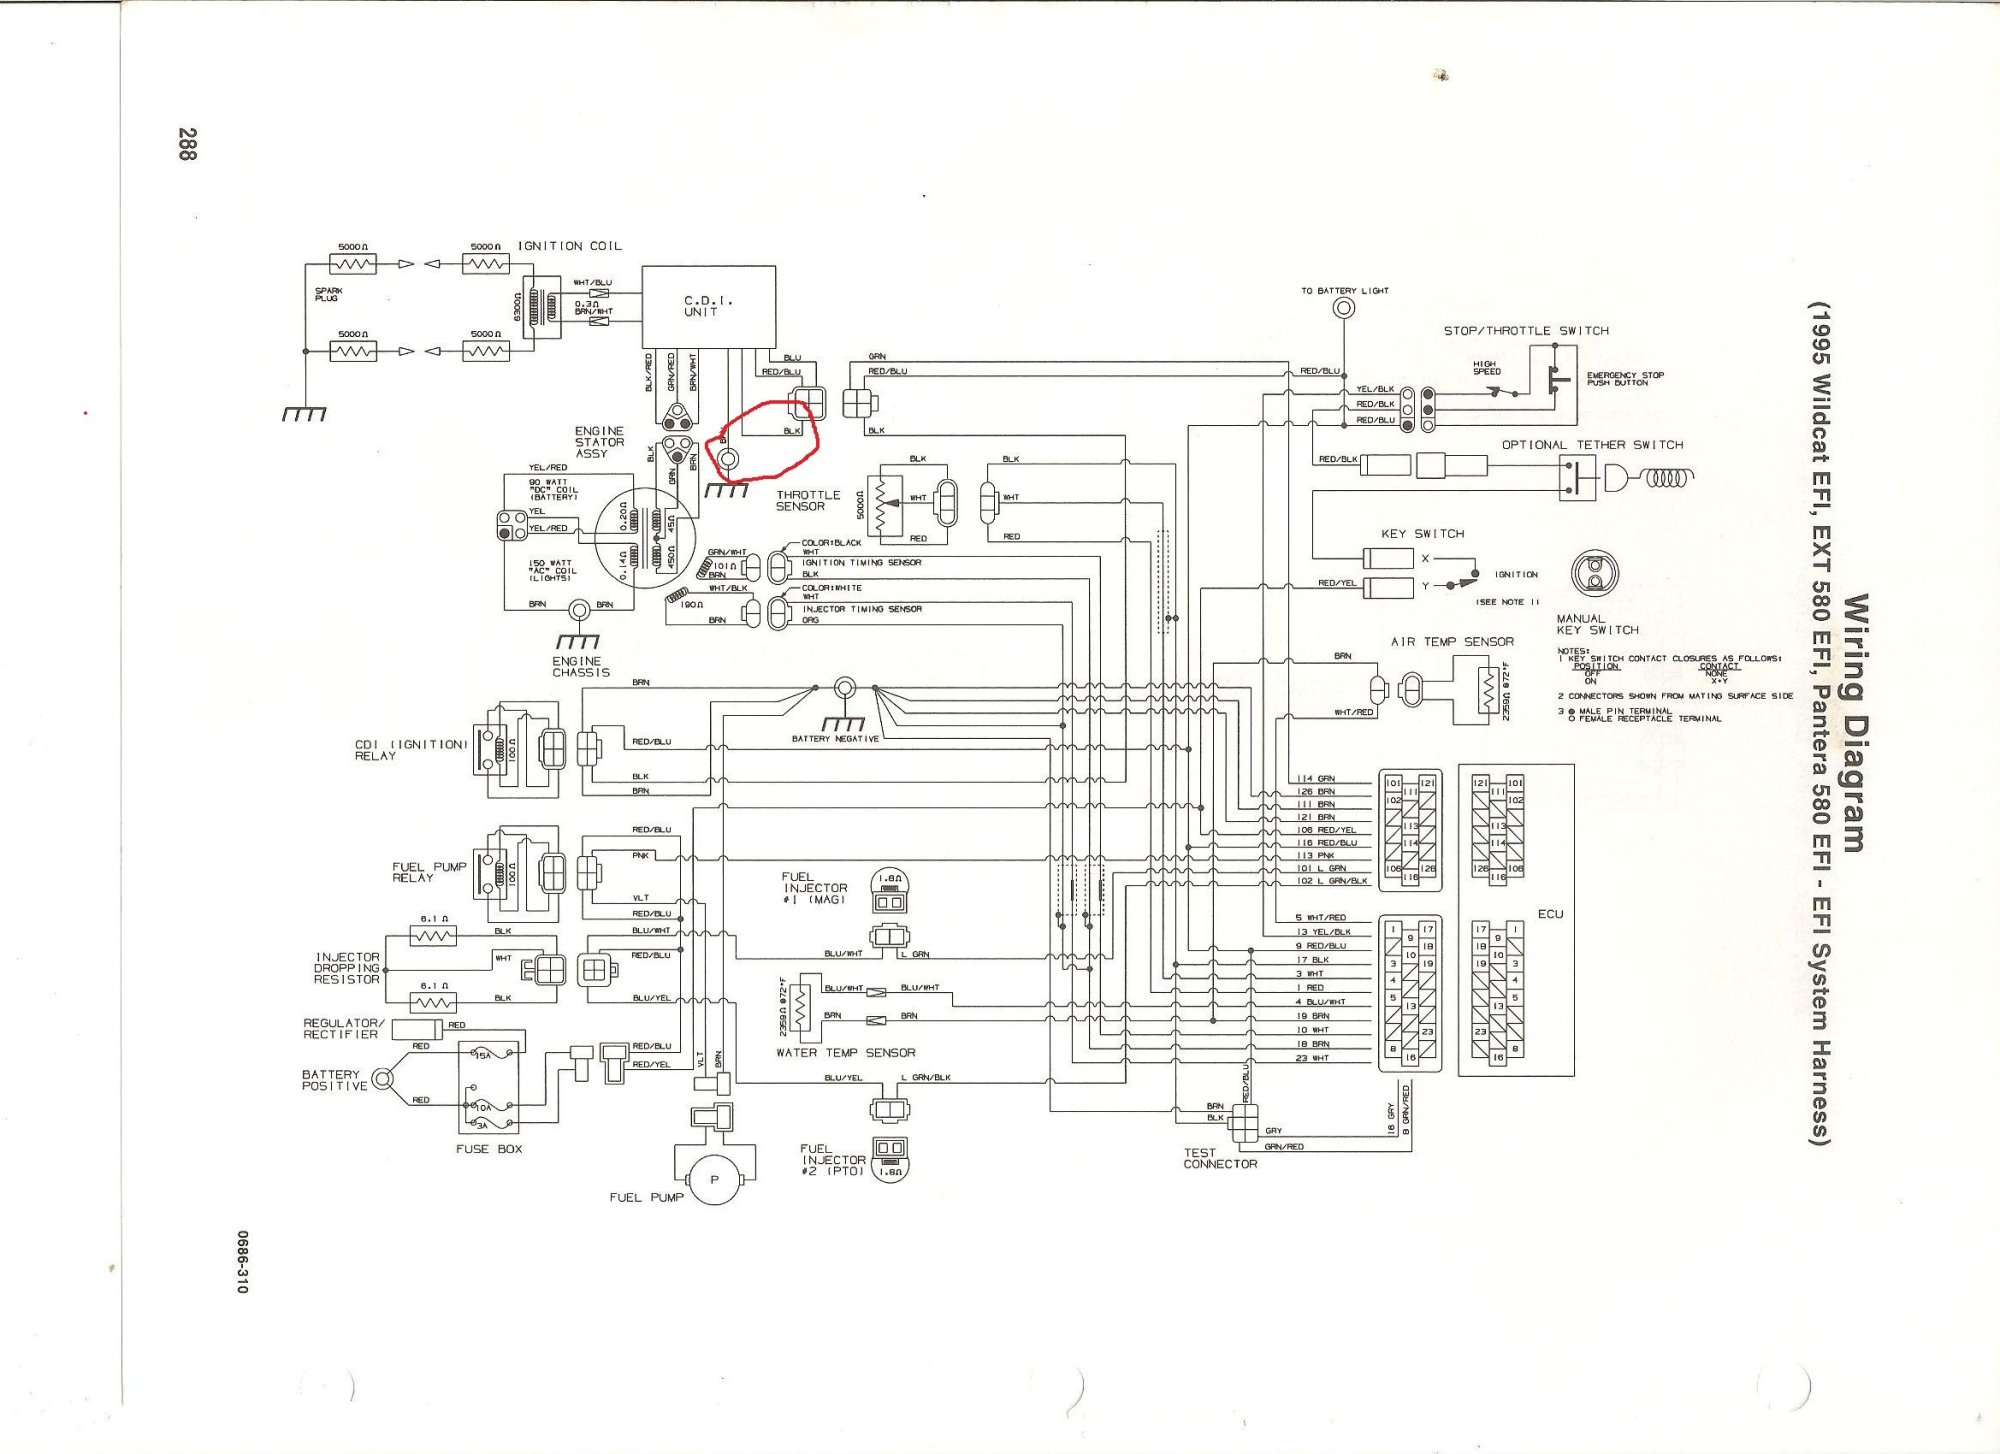 hight resolution of 1991 wildcat wiring diagram wiring diagram blogs arctic cat wildcat 650 wiring diagram 2002 arctic cat